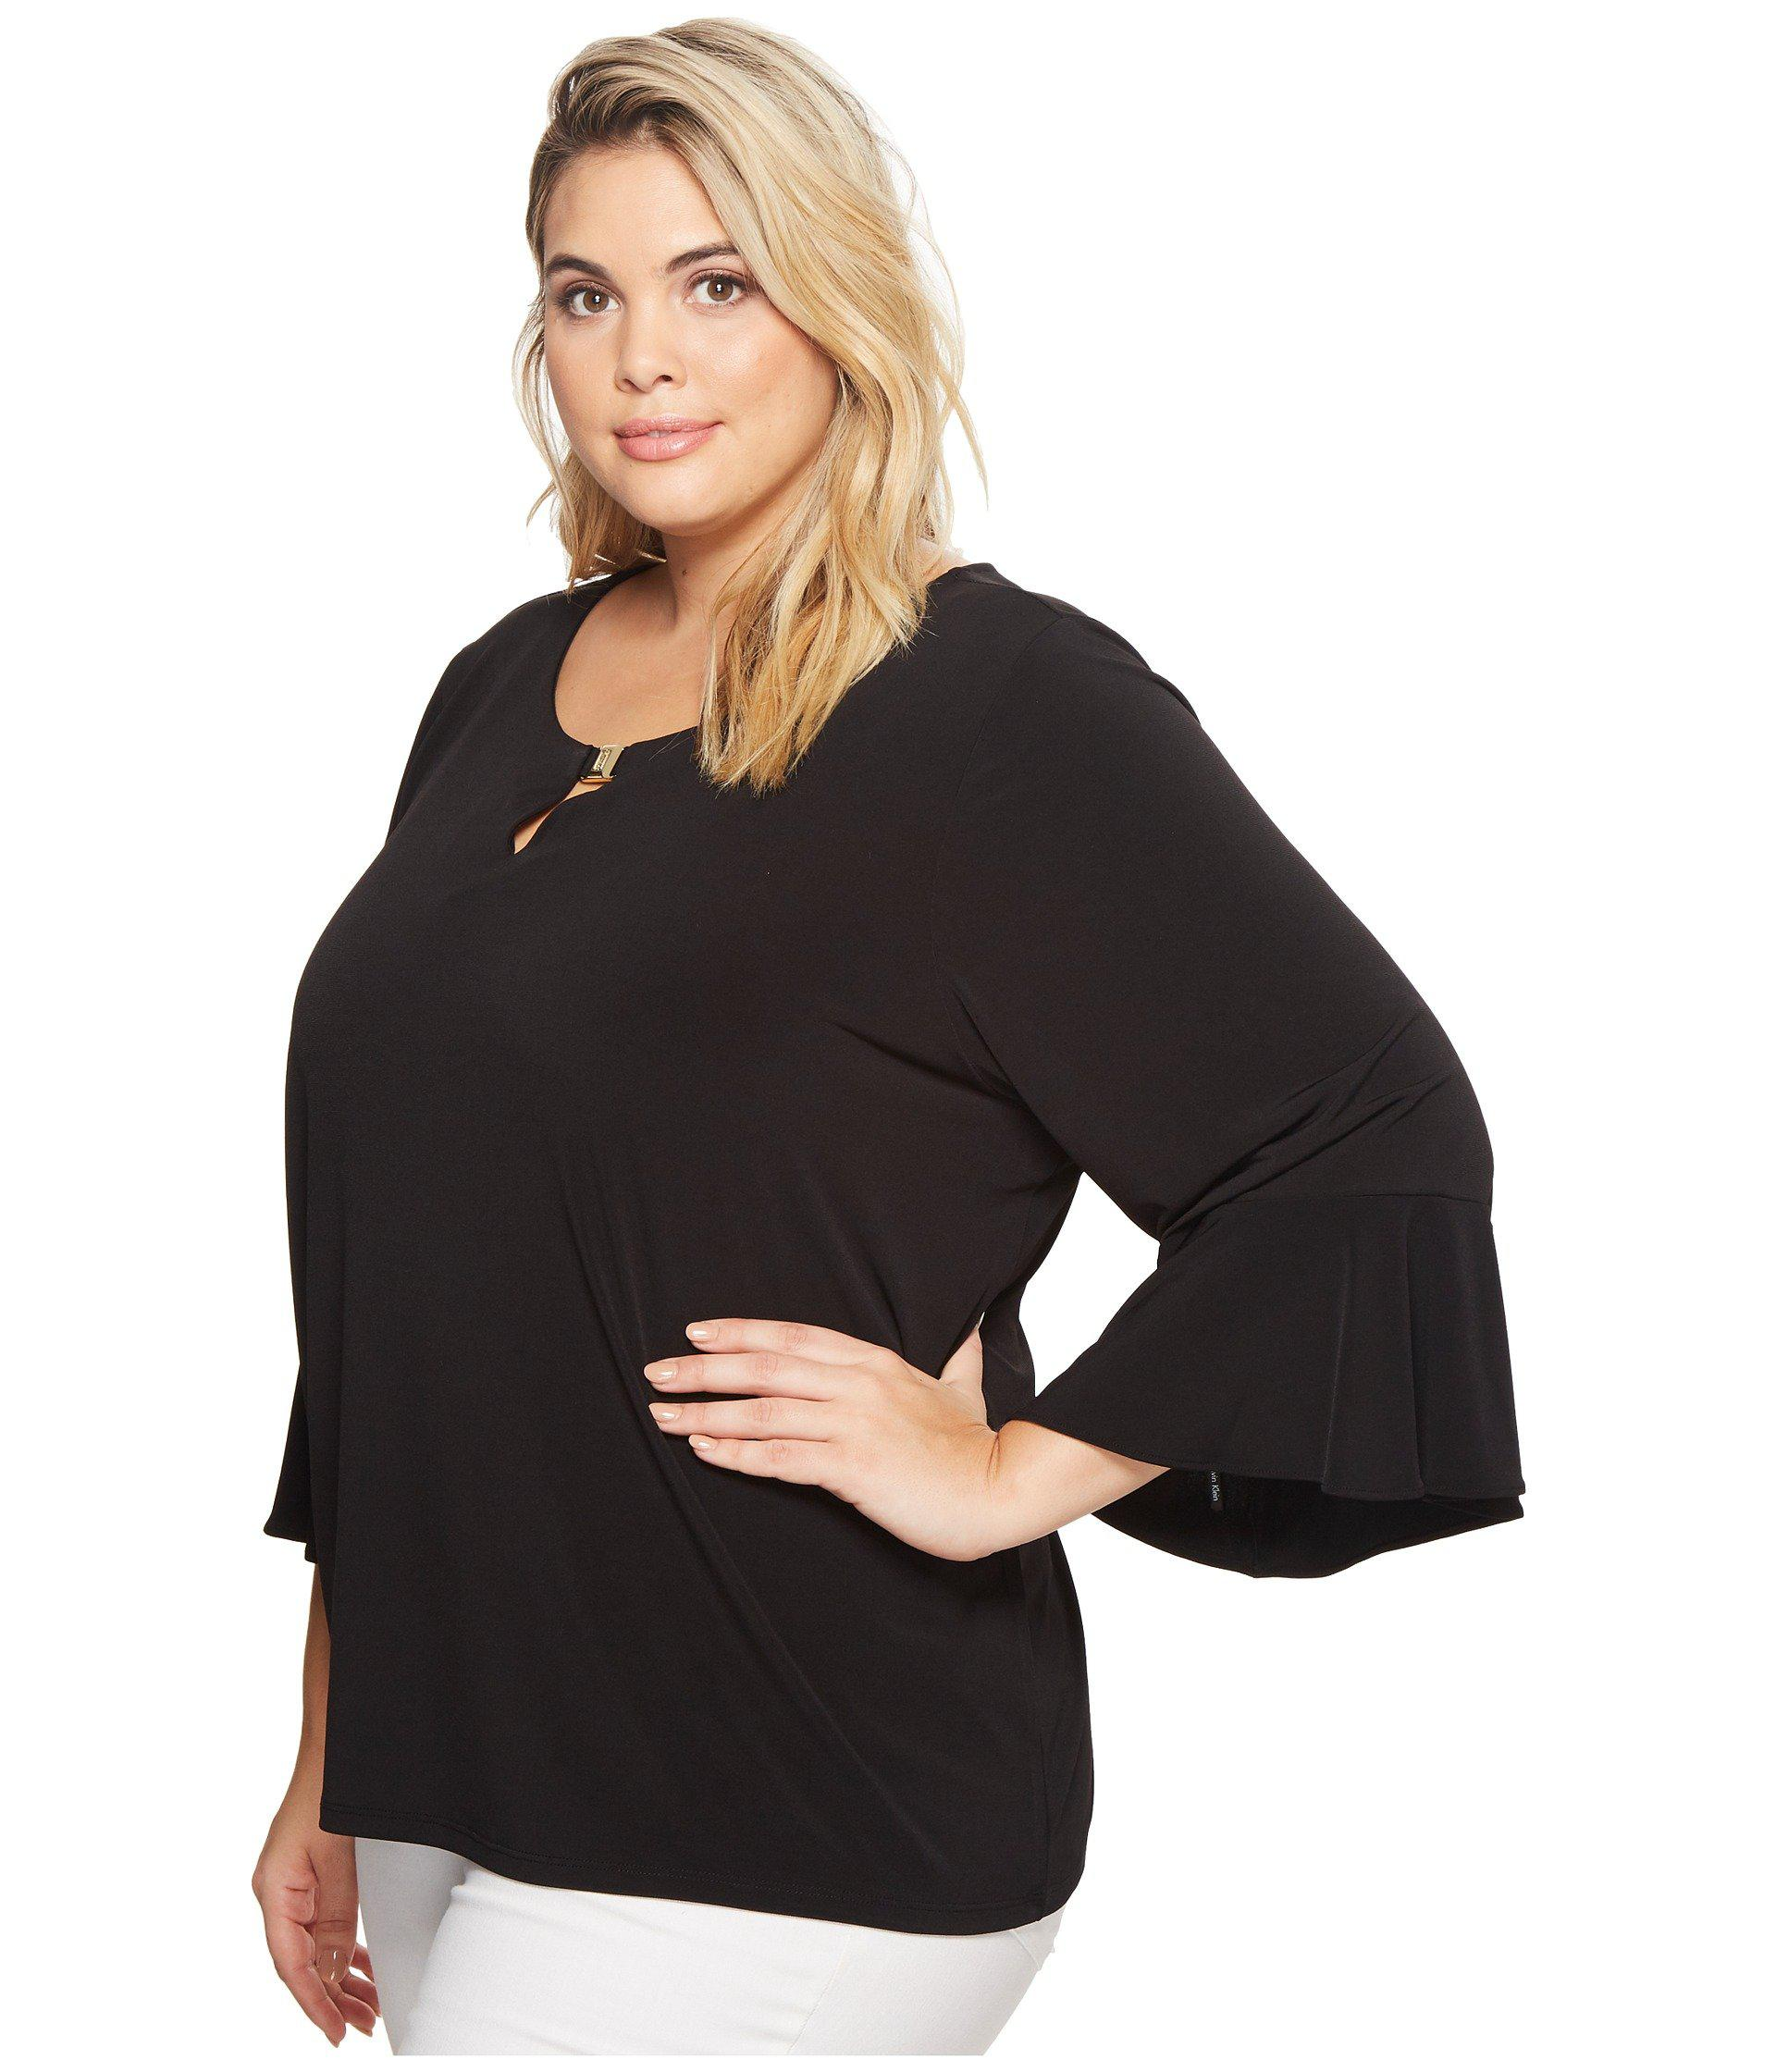 0feffb76848 Lyst - Calvin Klein Plus Size Ruffle Sleeve Top With Bar Hardware ...